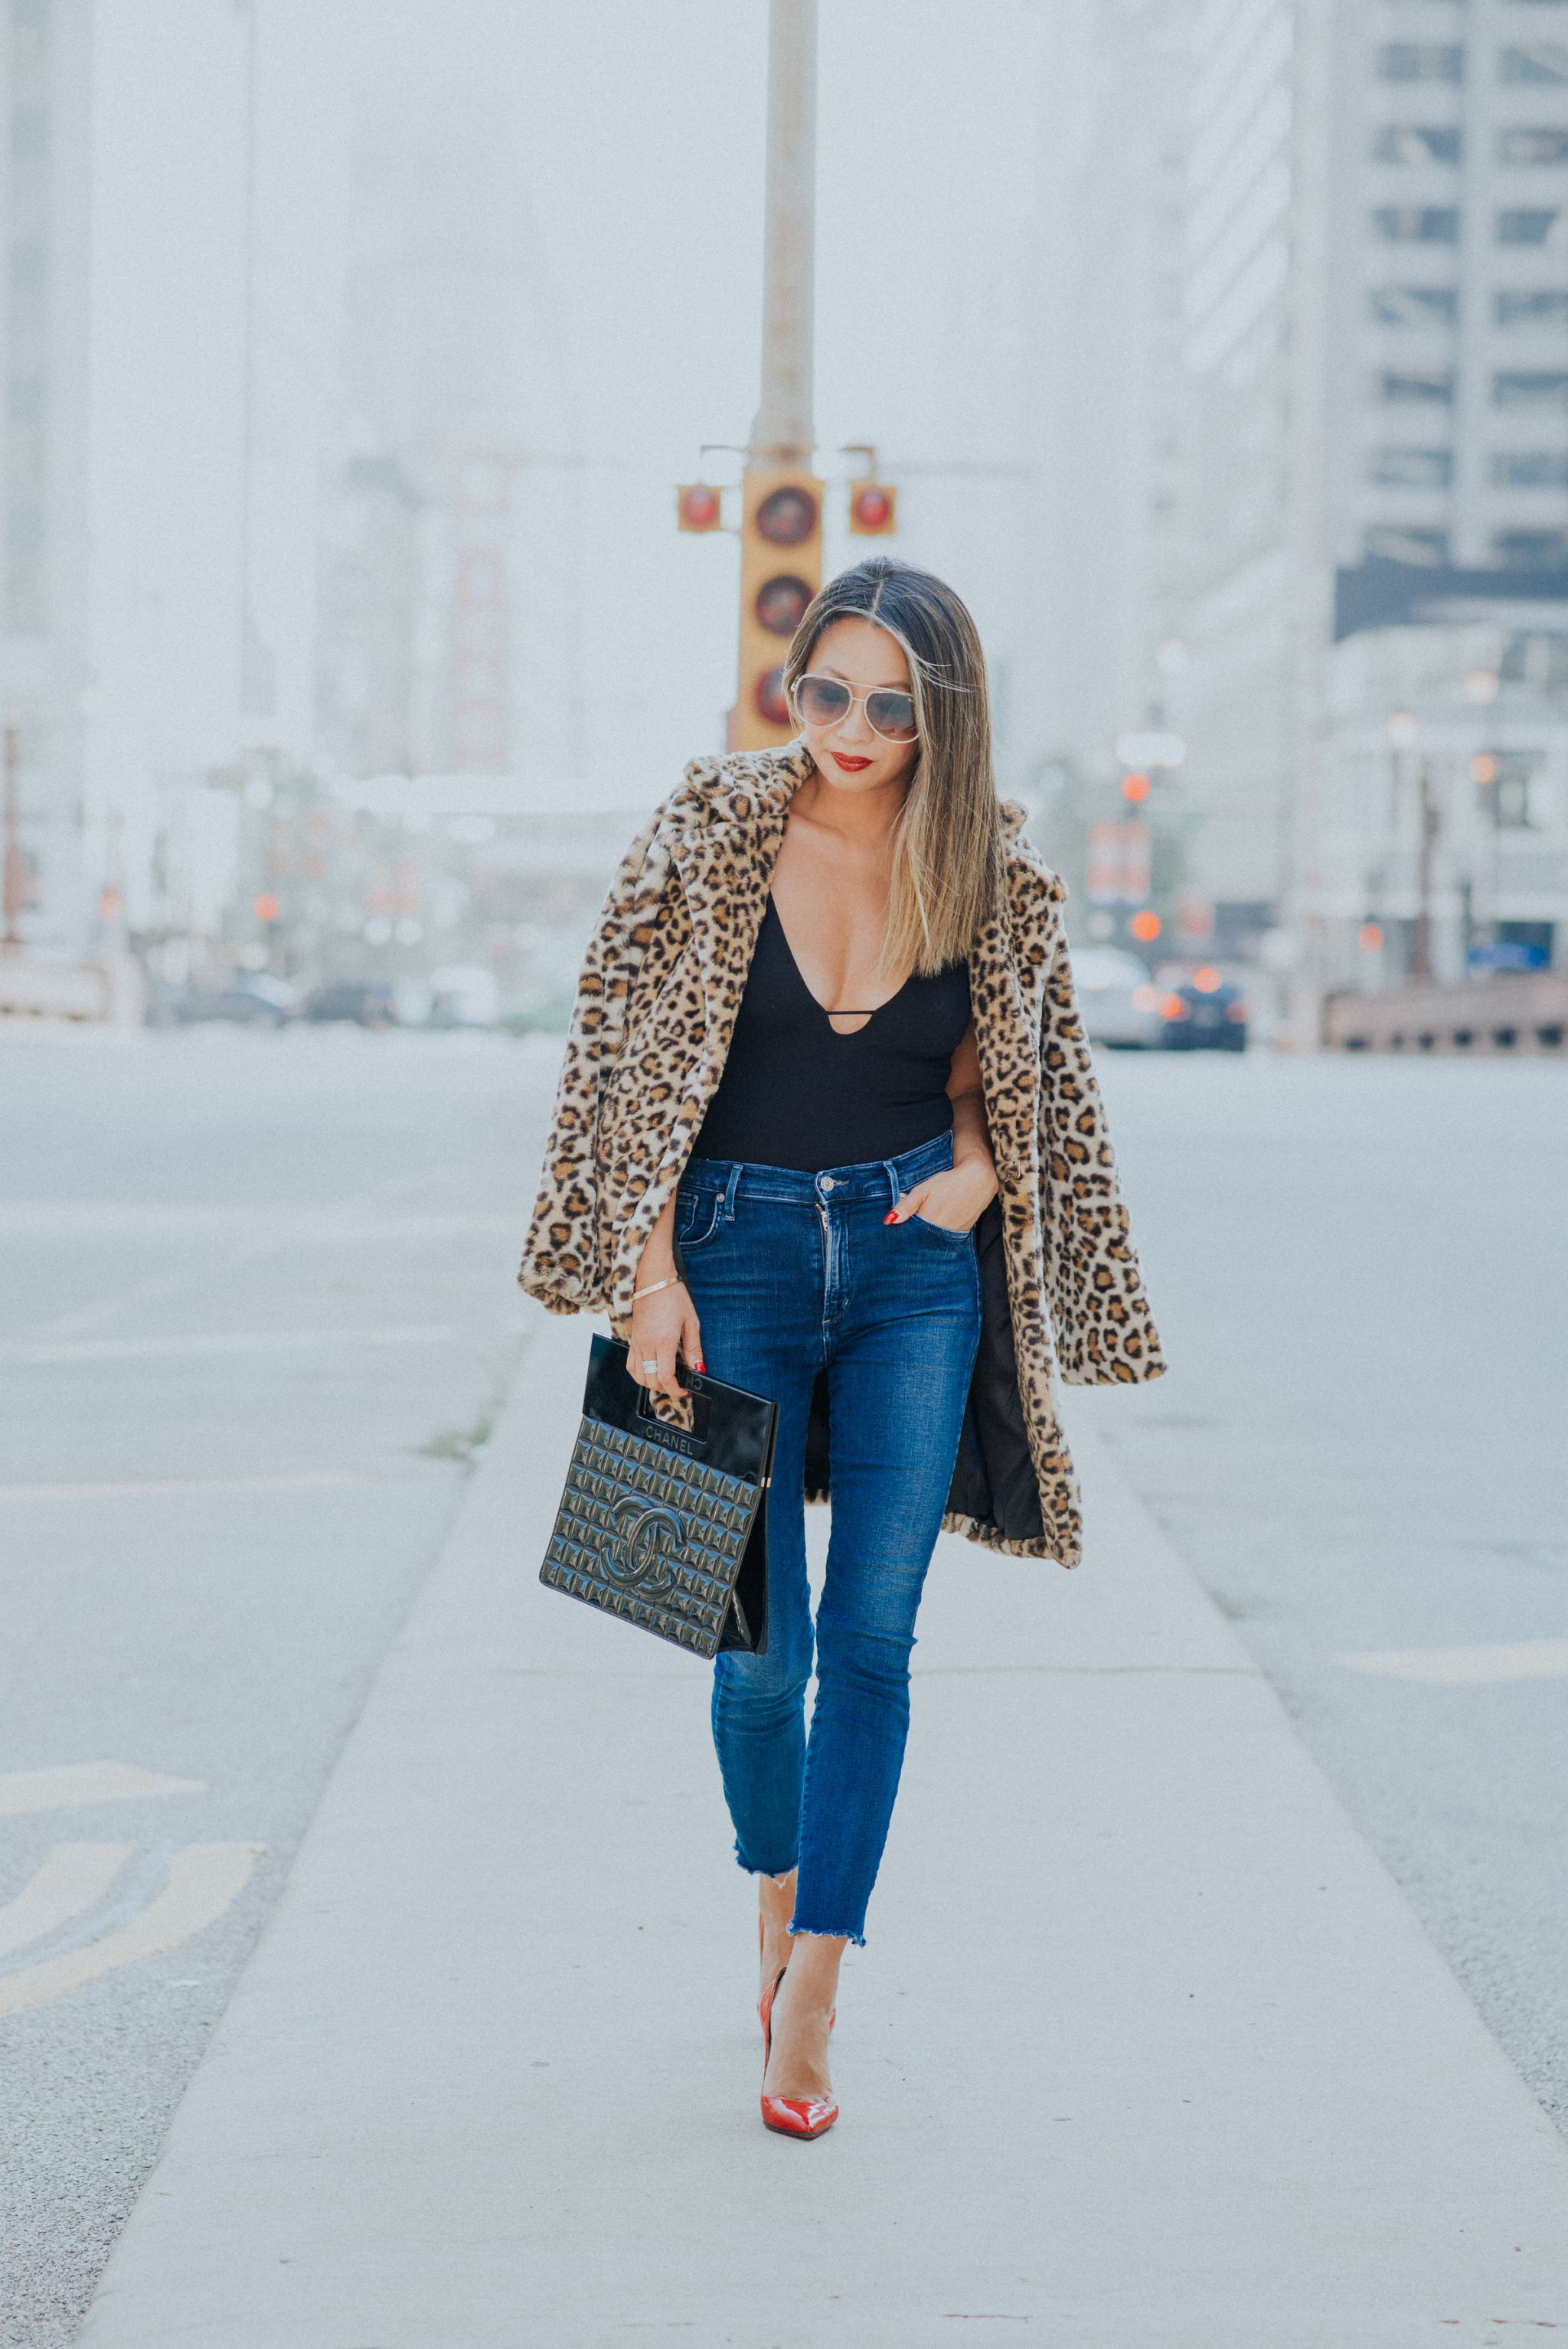 leopard faux fur jacket , leopard fur coat, leopard faux fur shopbop, how to style a faux fur jacket, chicago style blogger, leopard jacket, steal leopard coat, jennifer worman